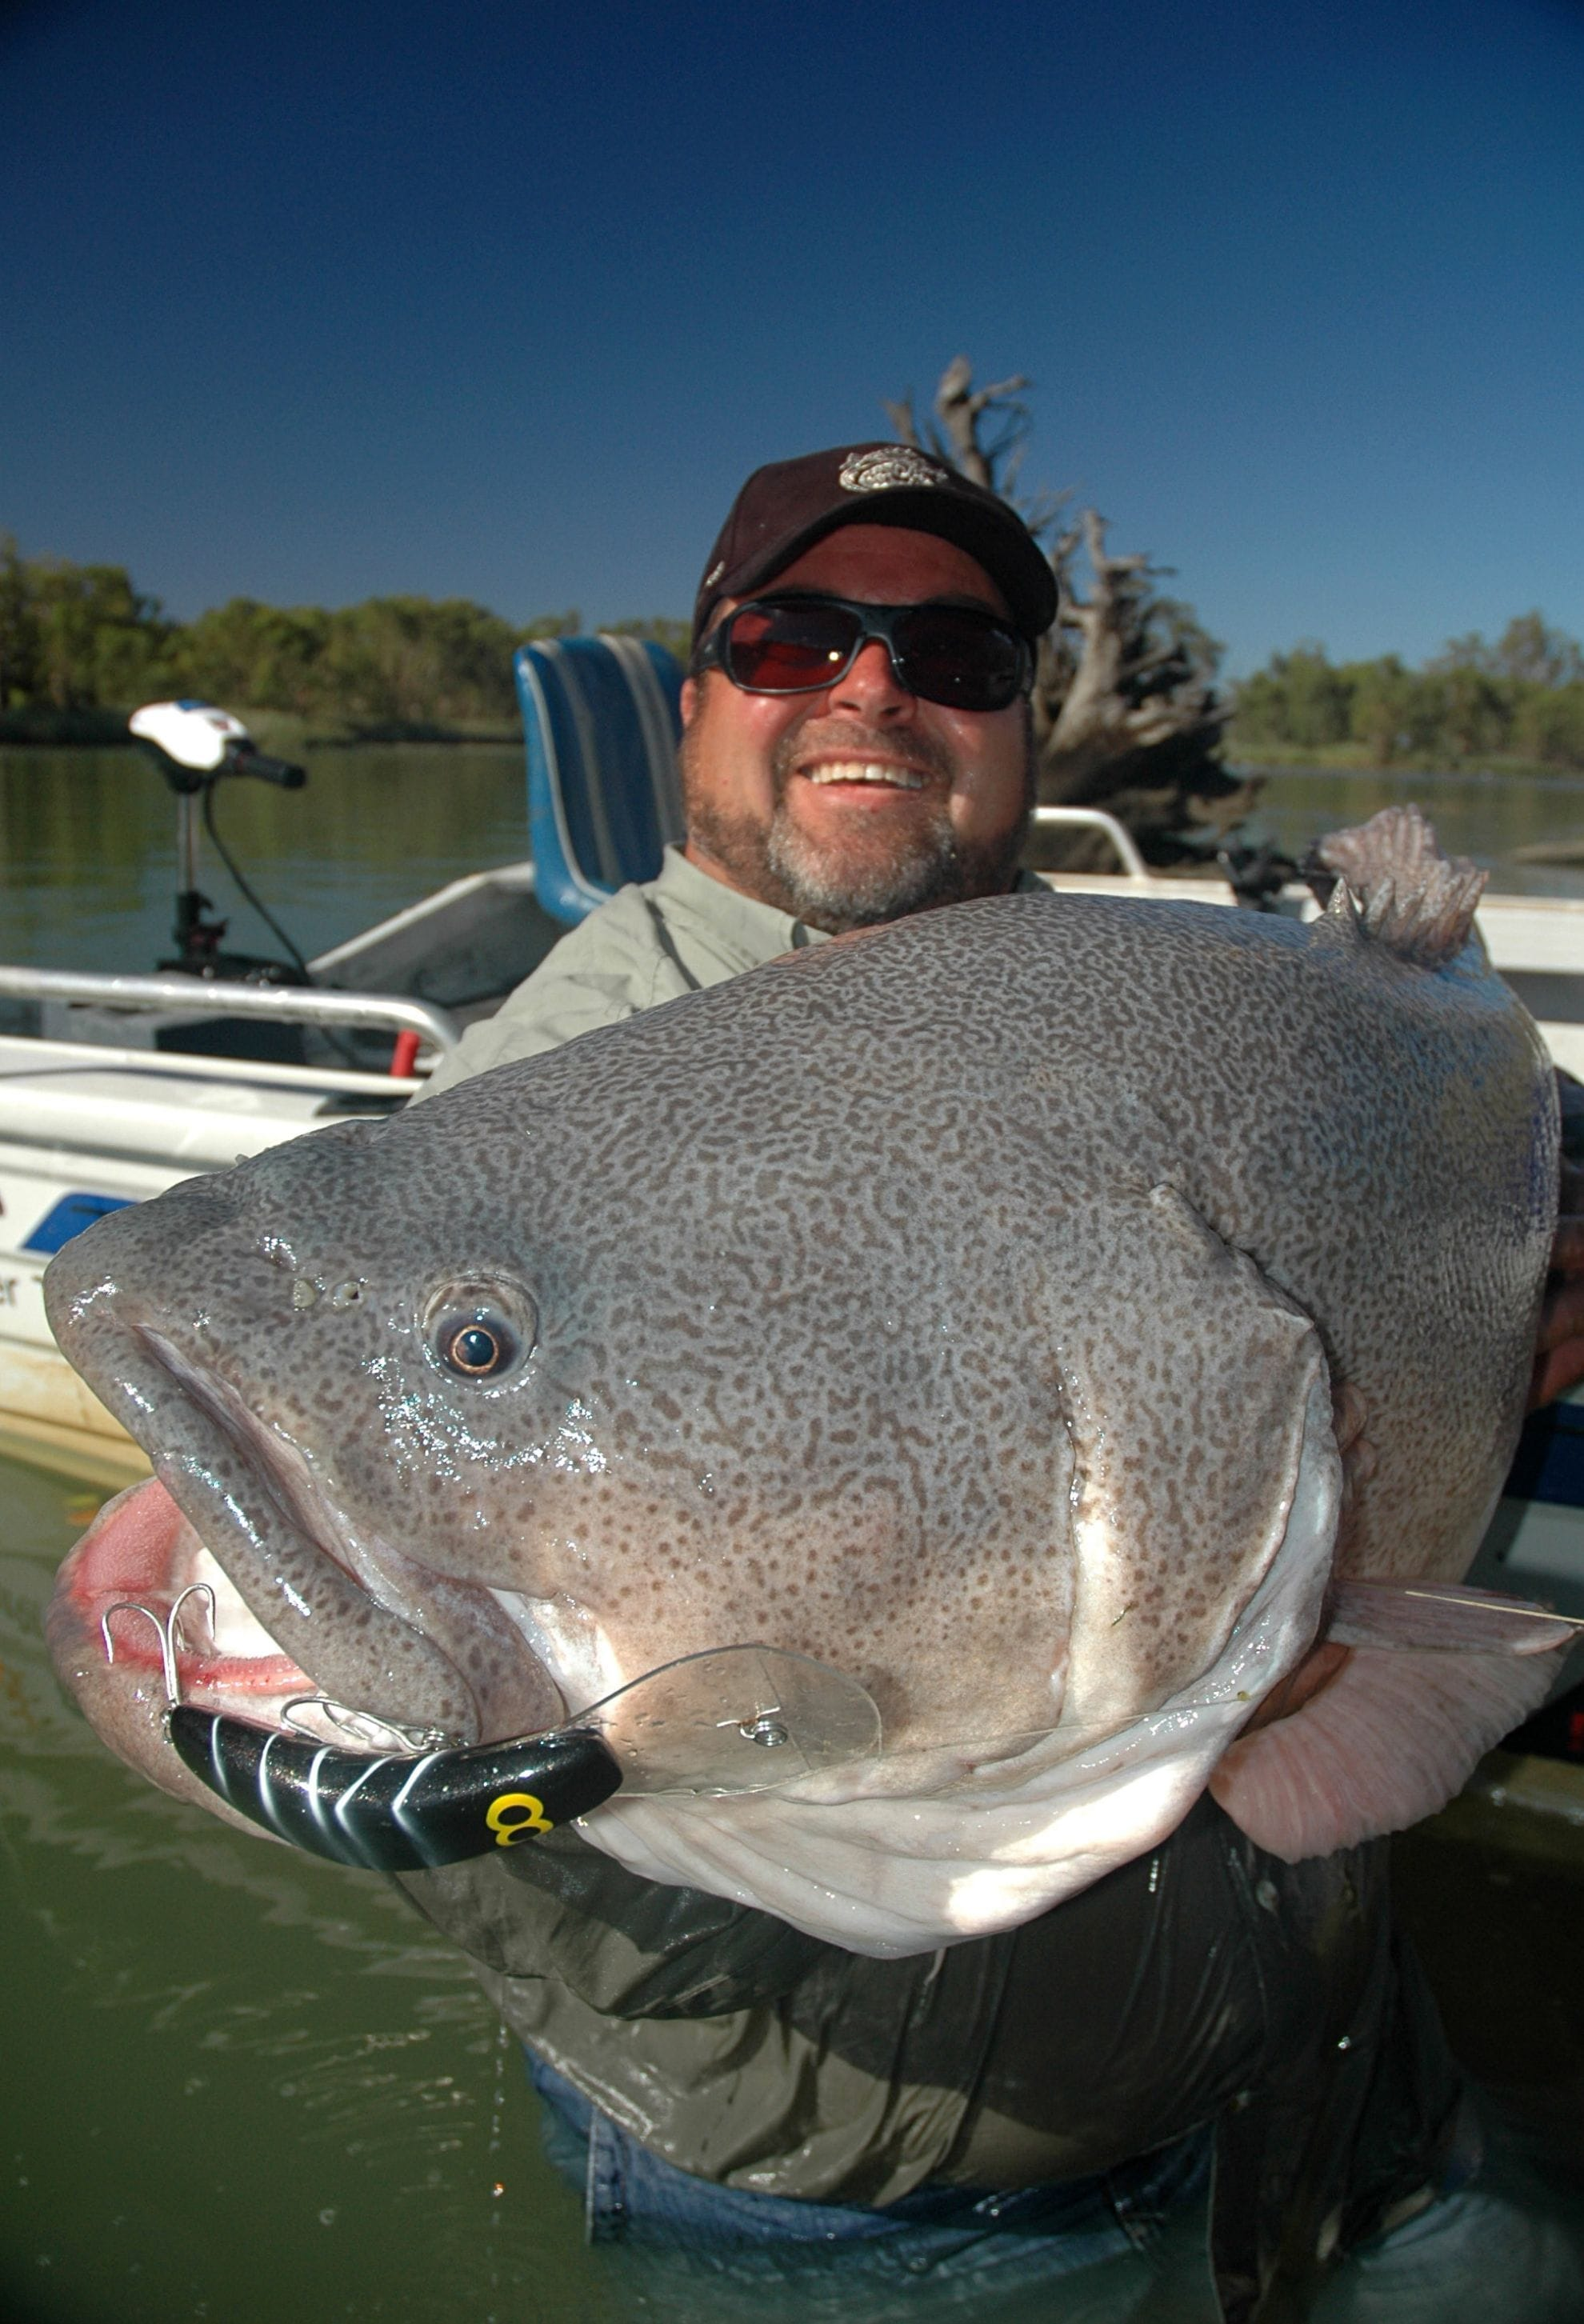 This big cod was caught in the Murray River by Gus Storer